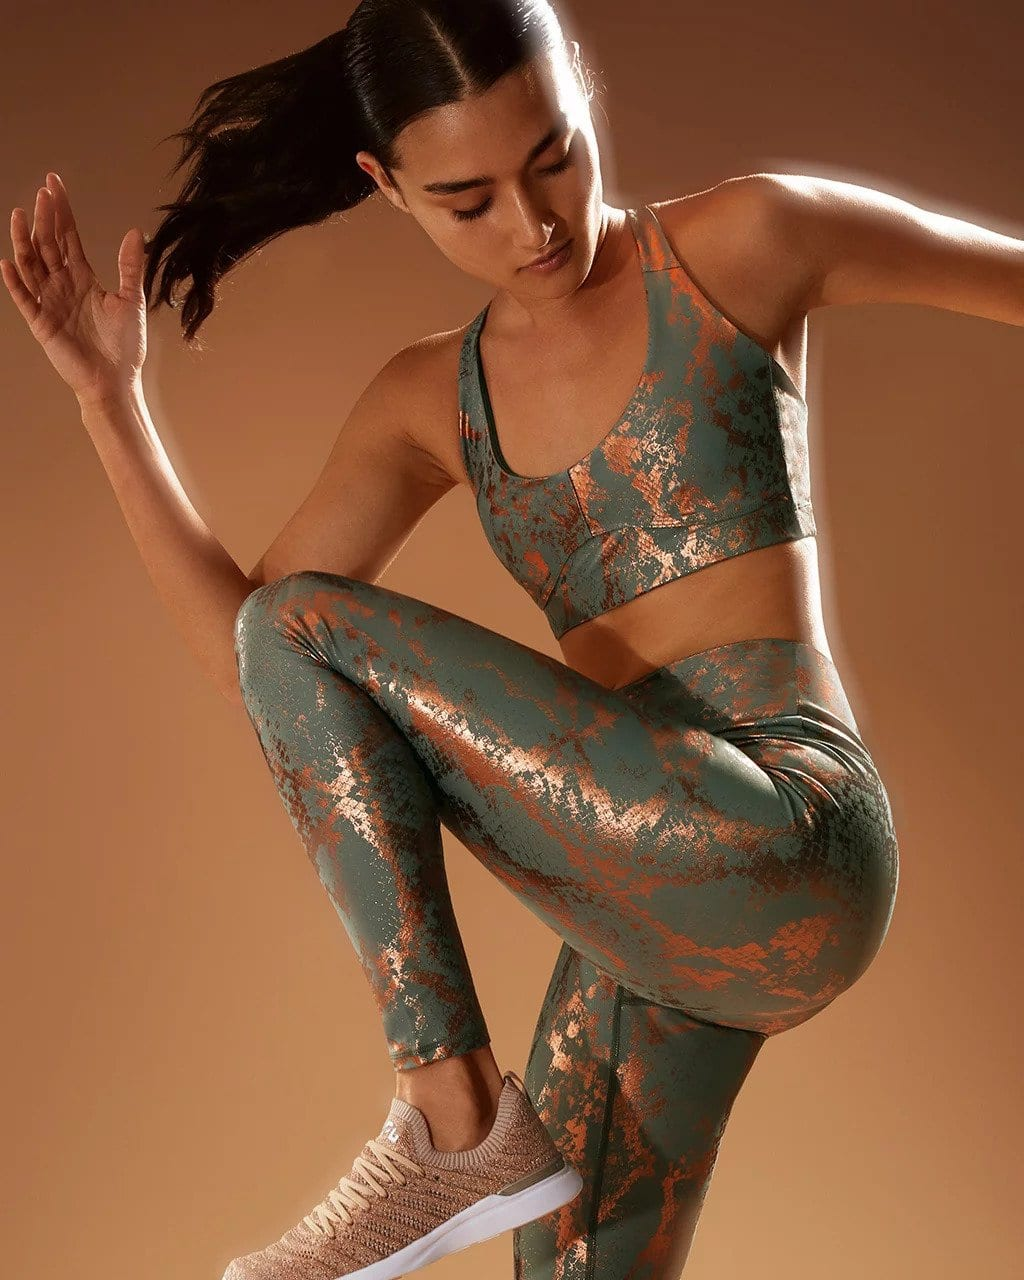 A sneak peek of some hot leggings from carbon38